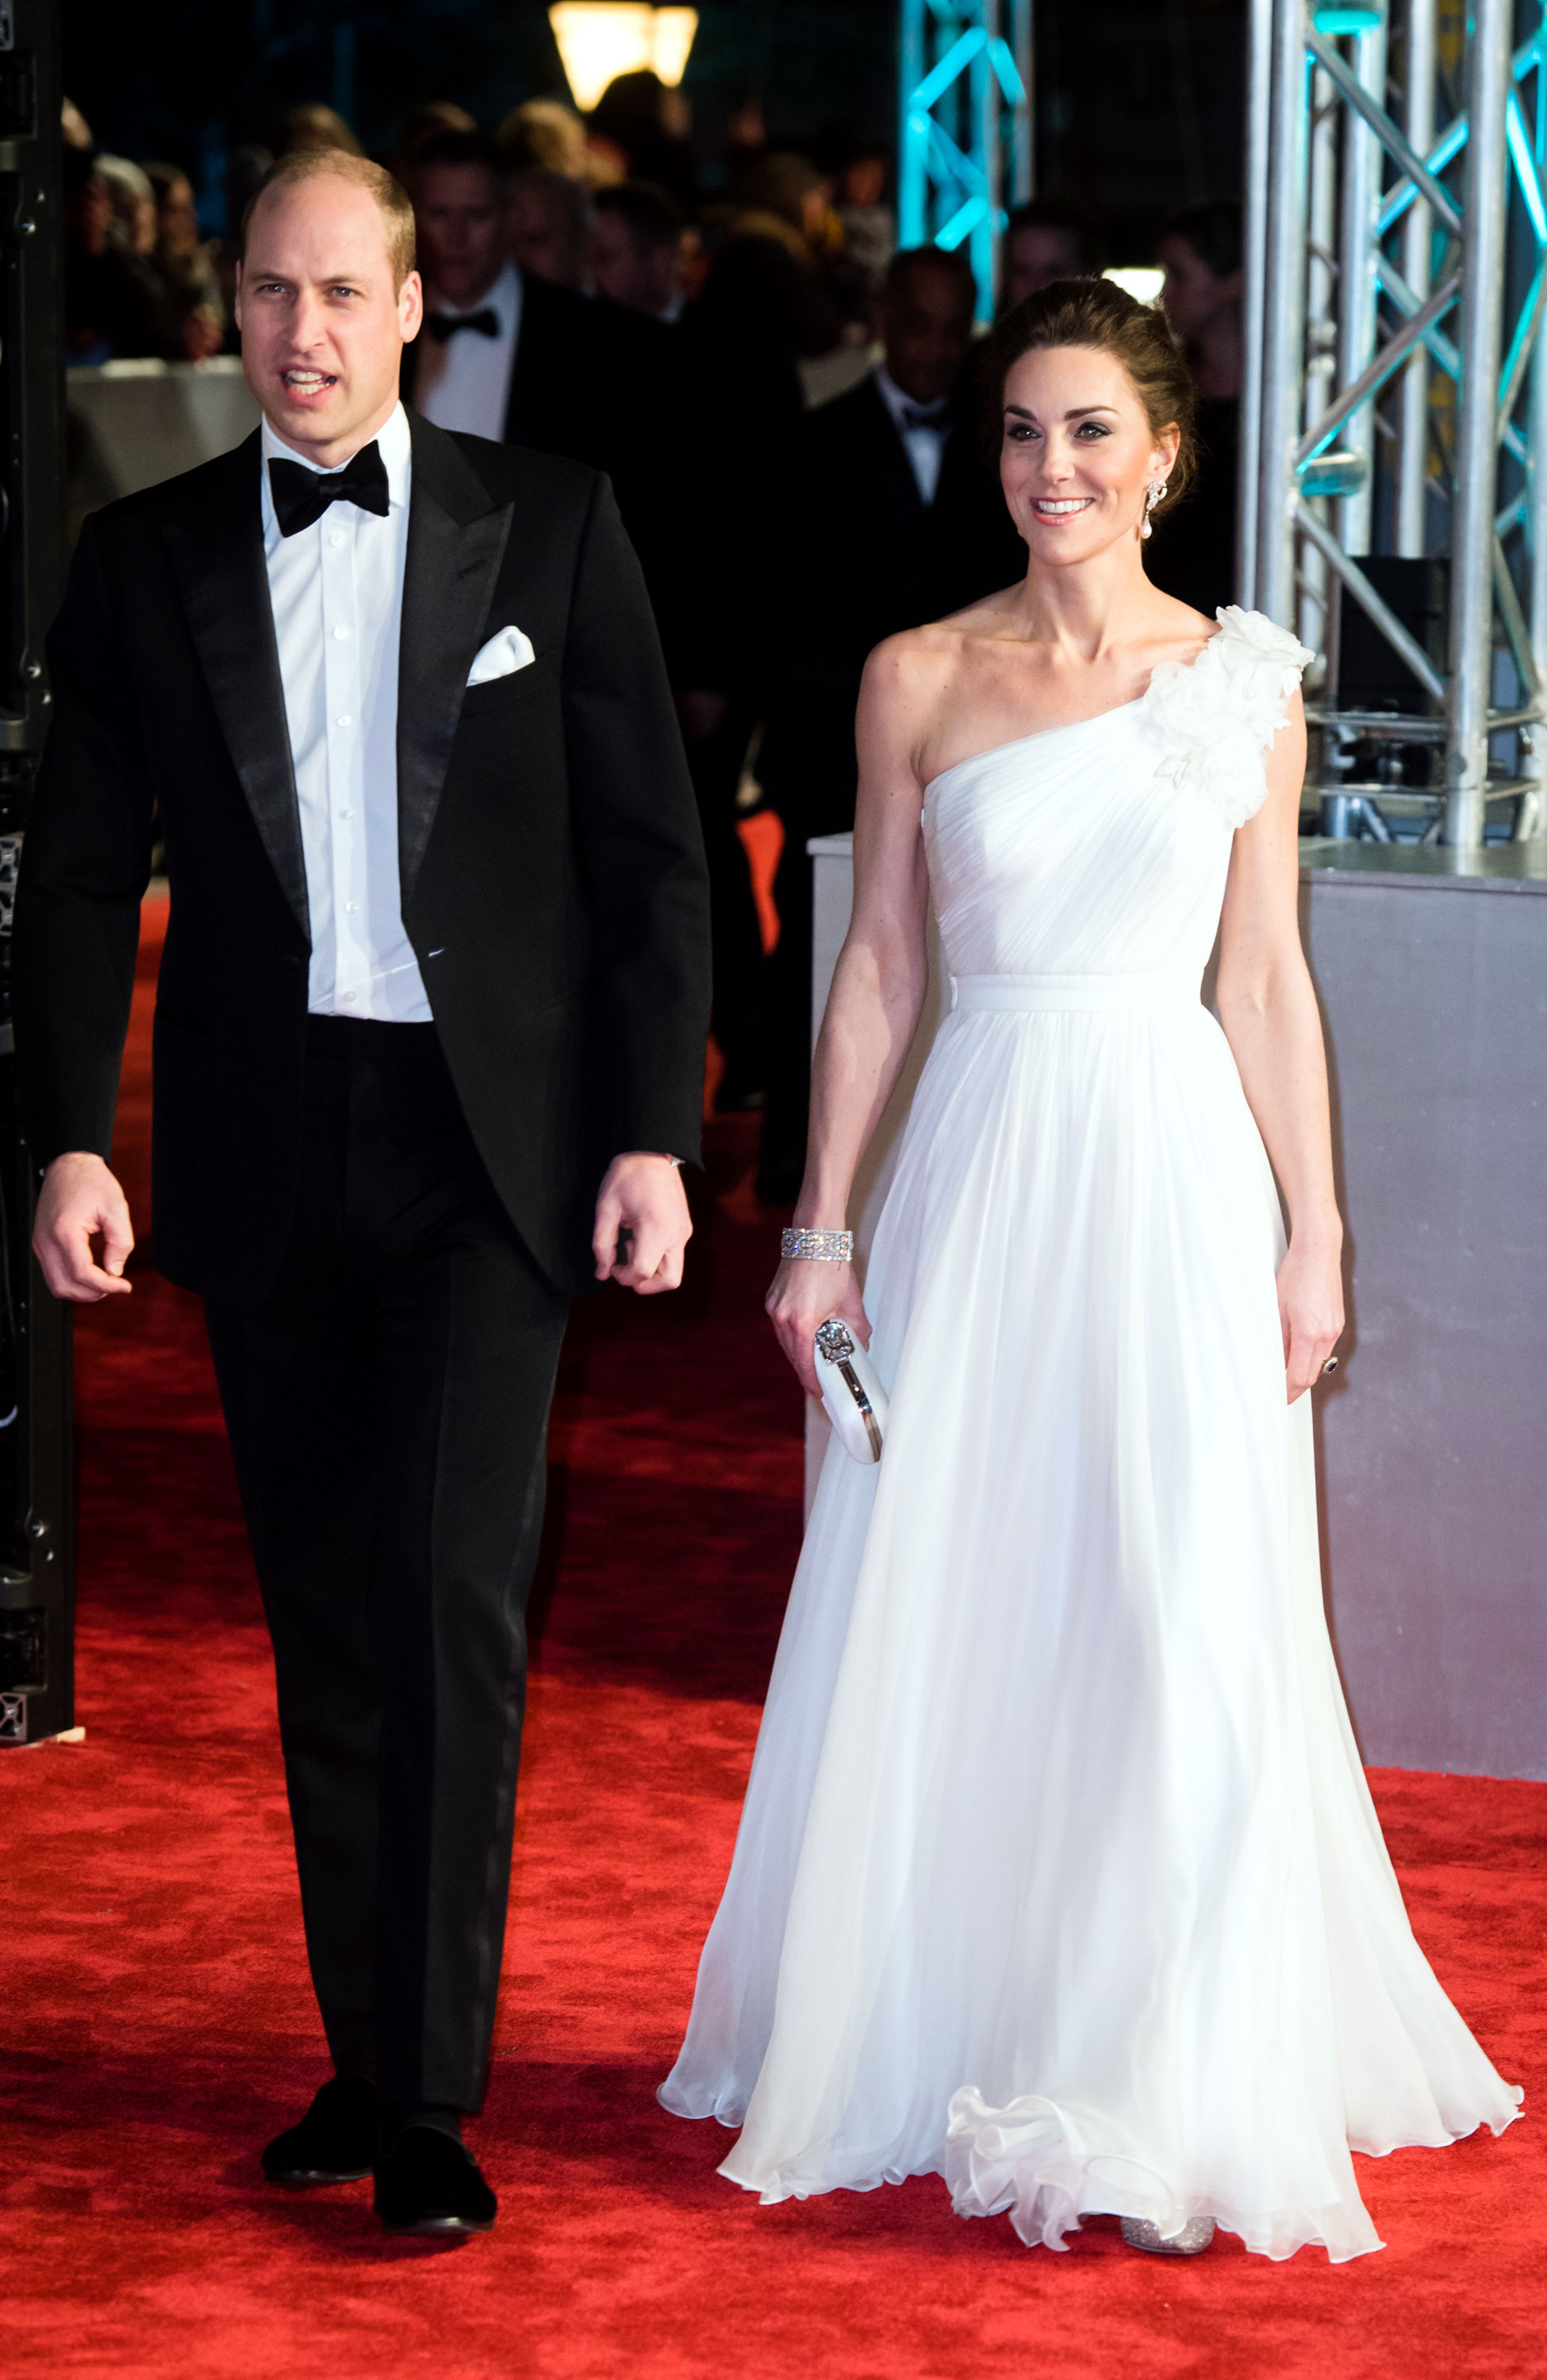 Kate Middleton Stuns at the BAFTAs - Kate wore a stunning diamond bracelet that she borrowed from the queen.